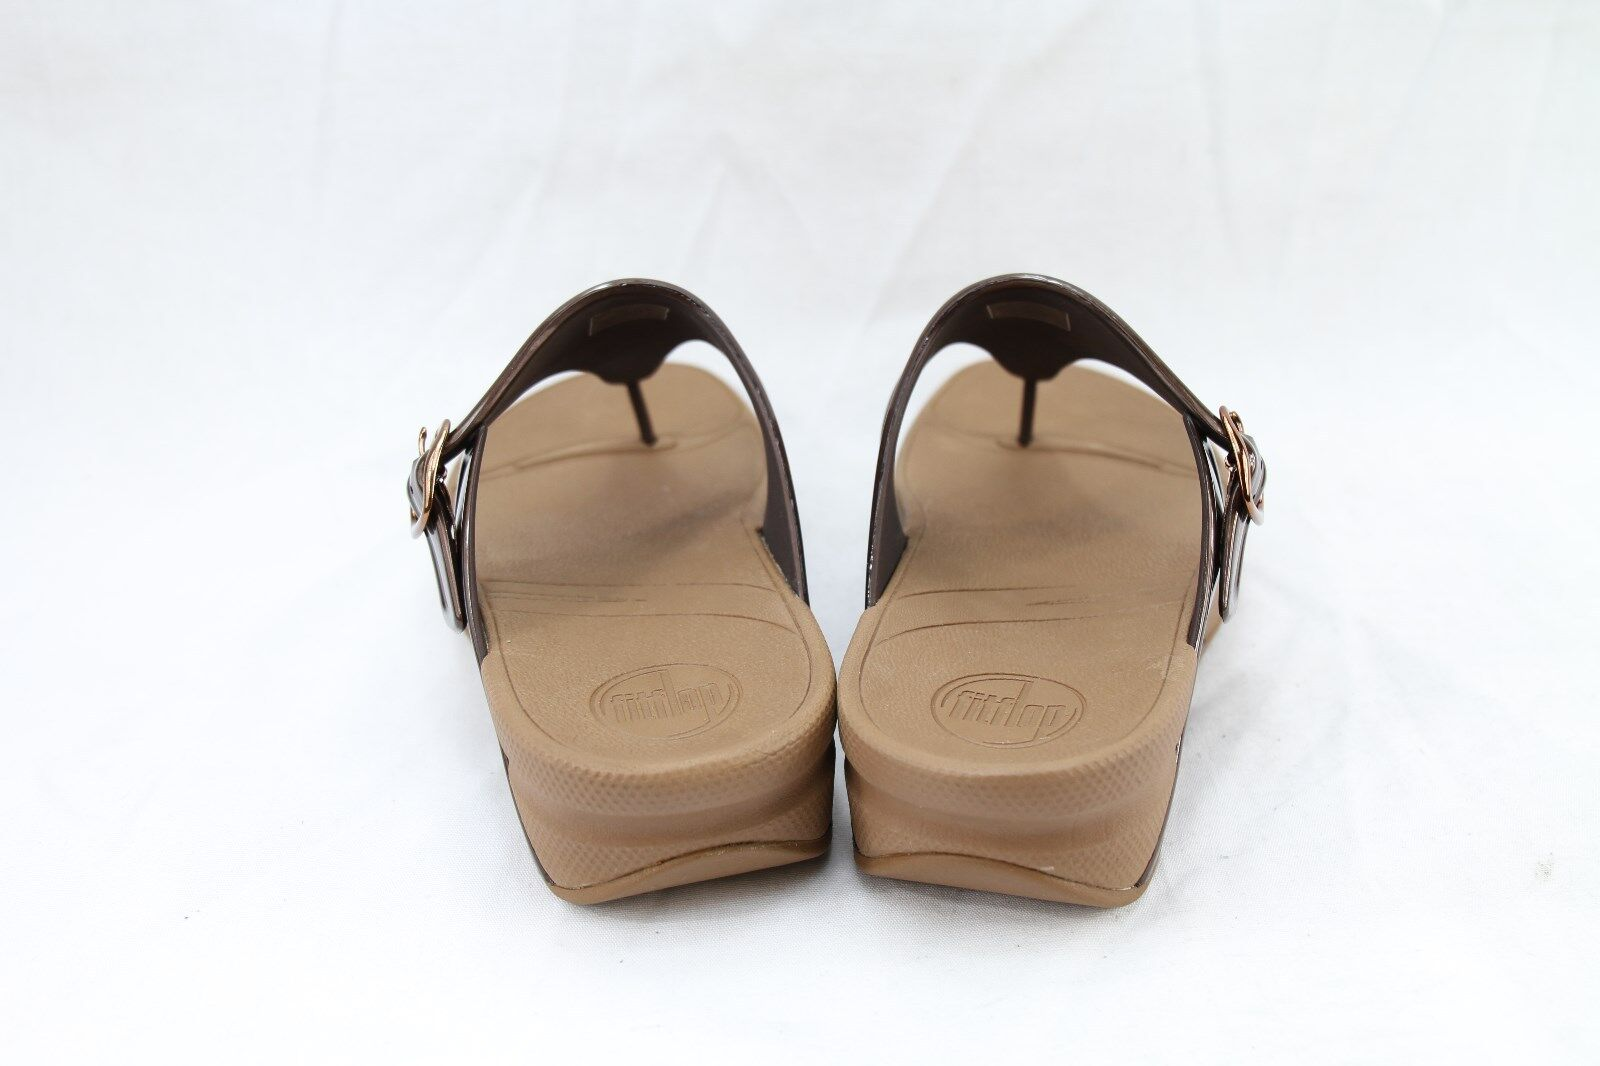 f091ddf52ffd FitFlop Super Jelly Microwobbleboard 403-012 Thong Sandals Medium (b M)  Women Browns 5